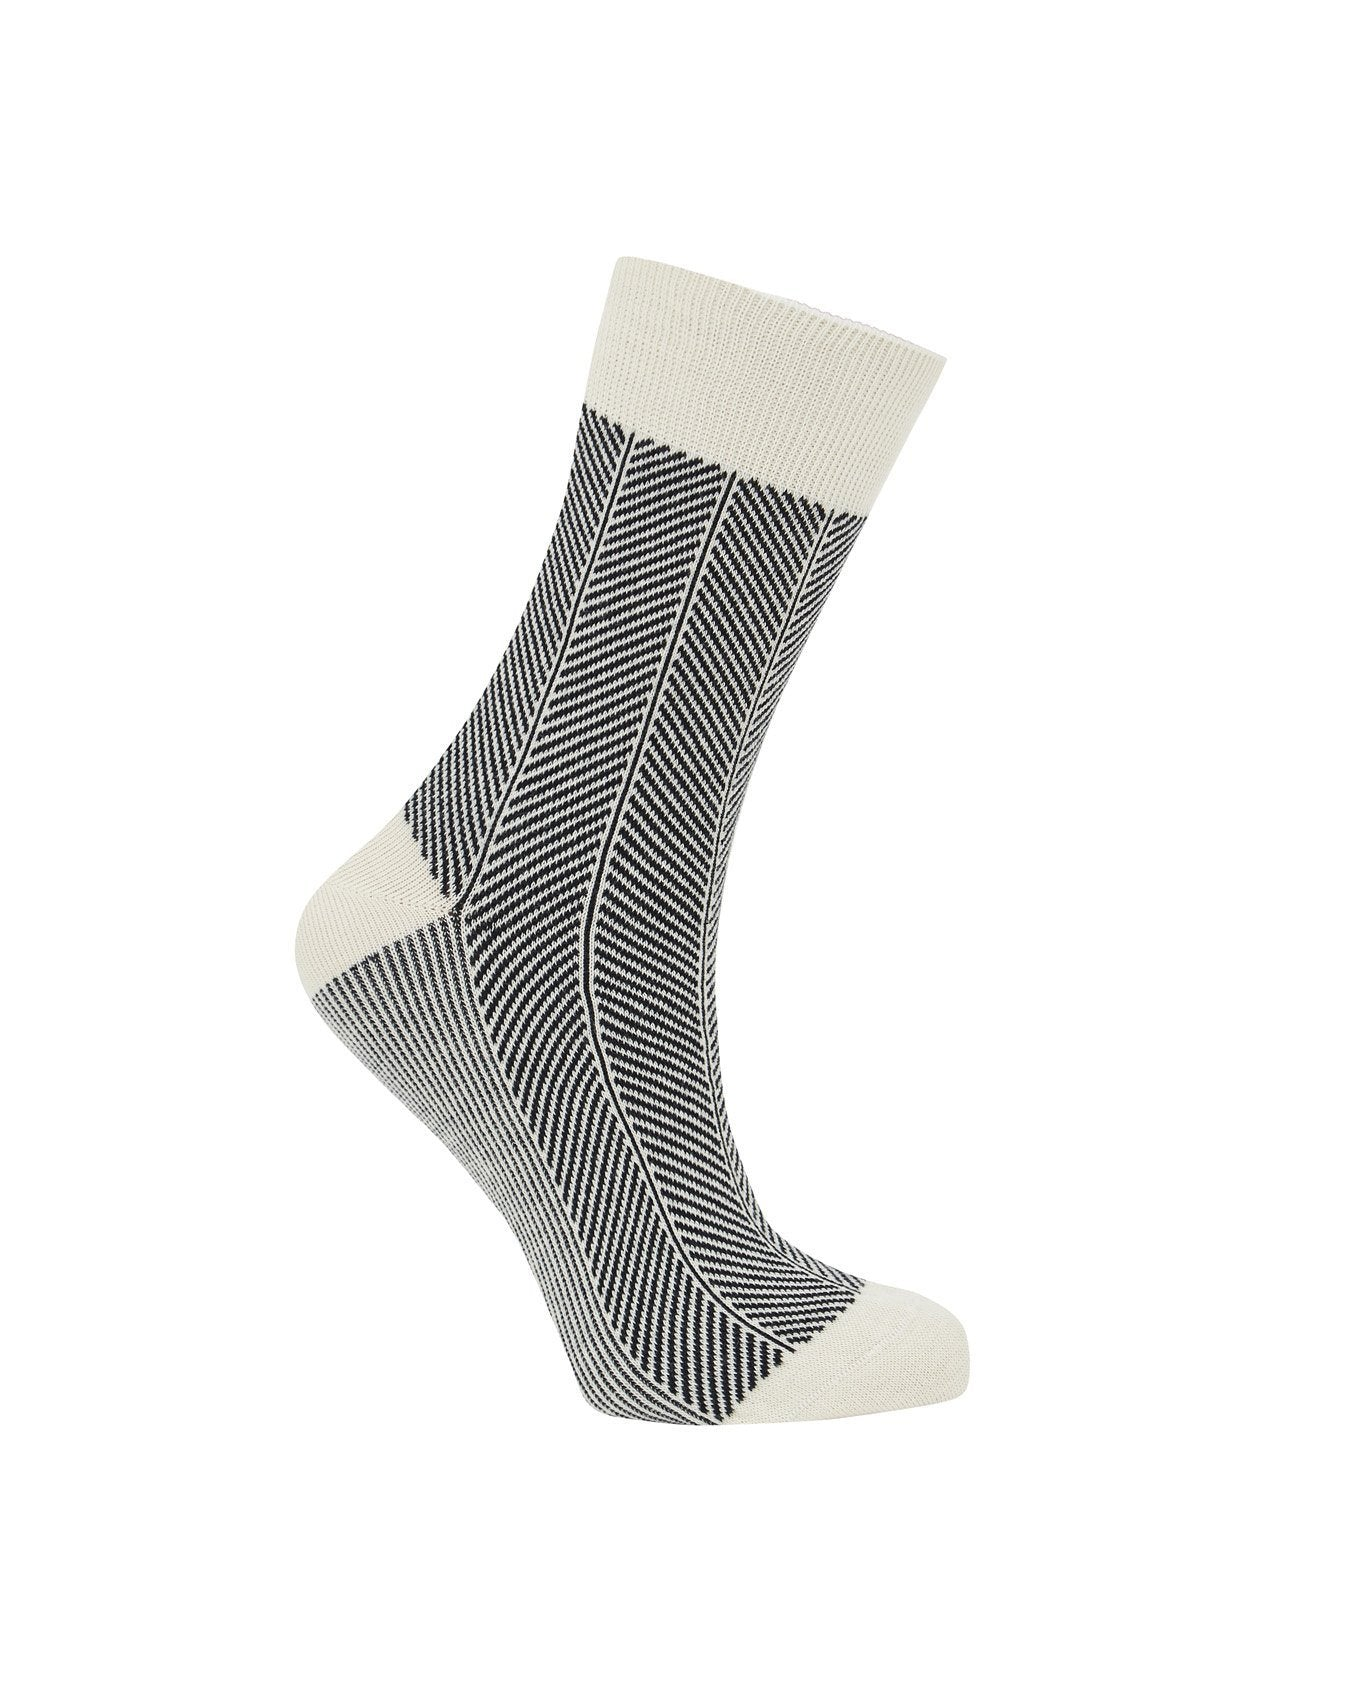 Socks - HERRINGBONE Ink - GOTS Organic Cotton Socks